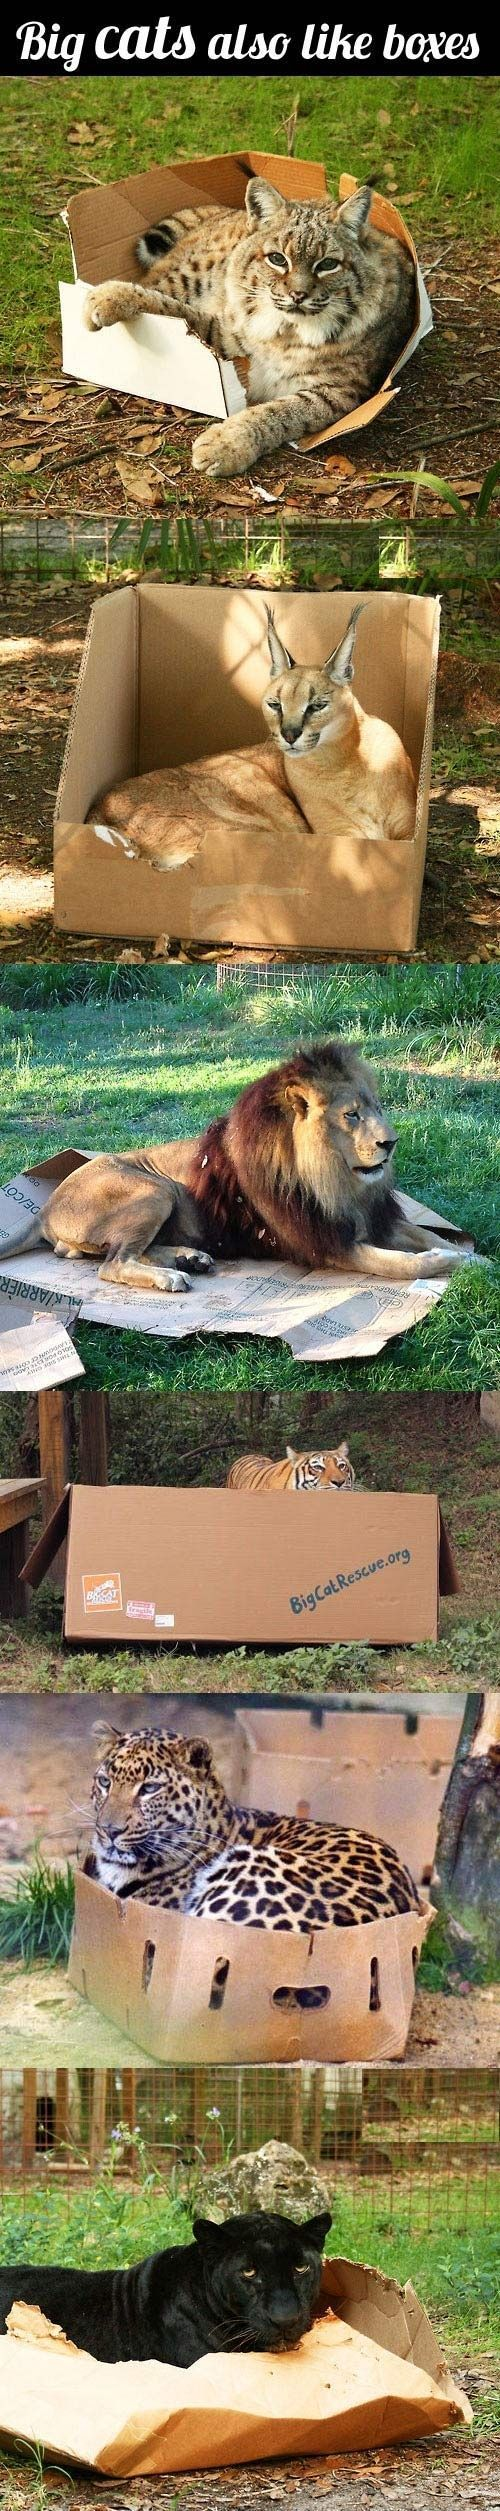 Big cats also love boxes